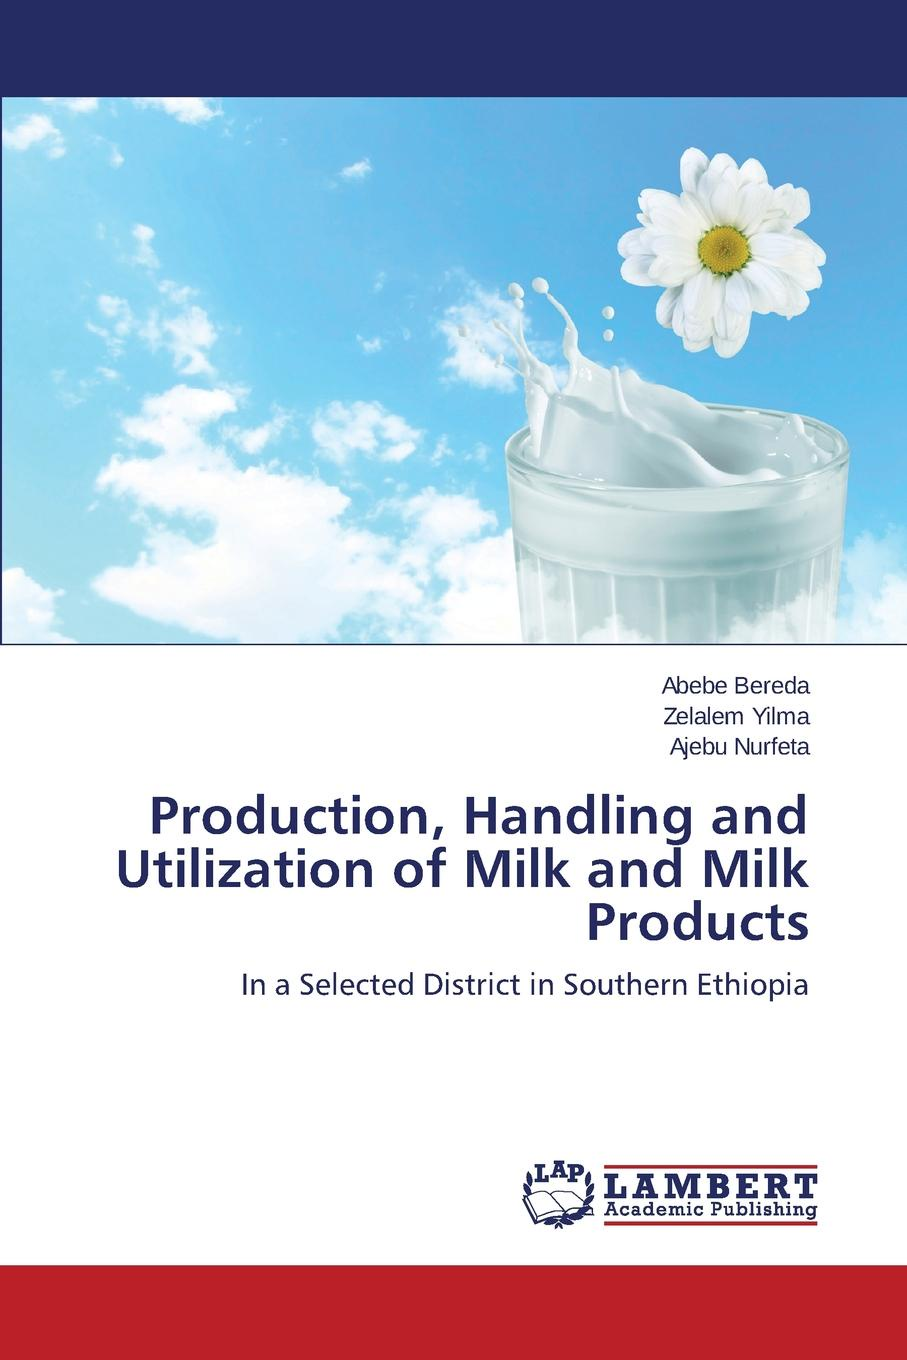 Bereda Abebe, Yilma Zelalem, Nurfeta Ajebu Production, Handling and Utilization of Milk and Milk Products raw milk quality